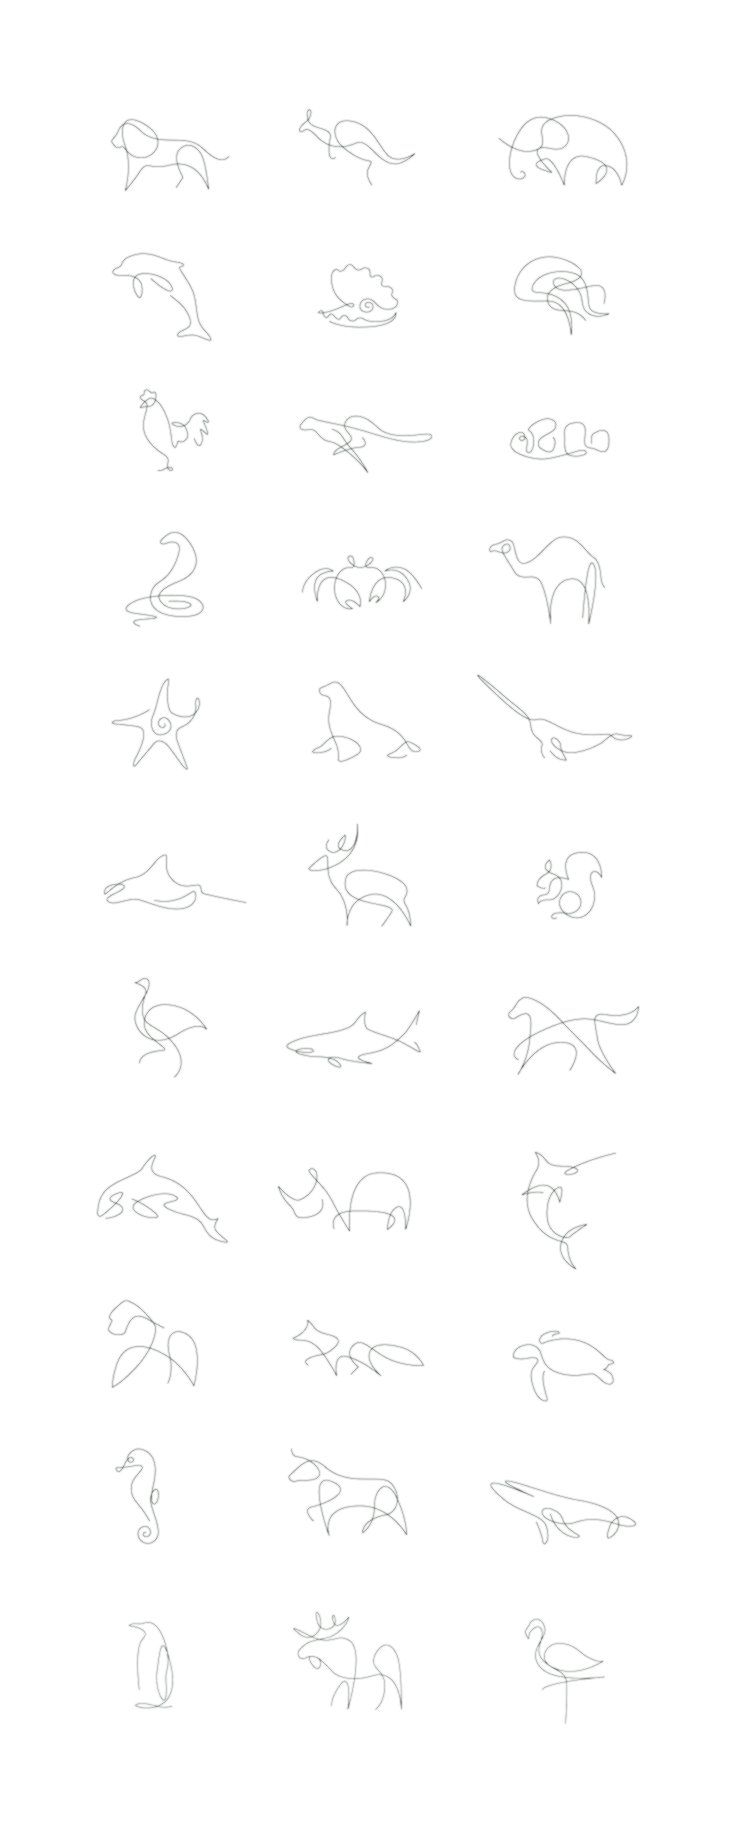 How to draw an animal with only one line – Steemit – #on #a #line #man #with # only